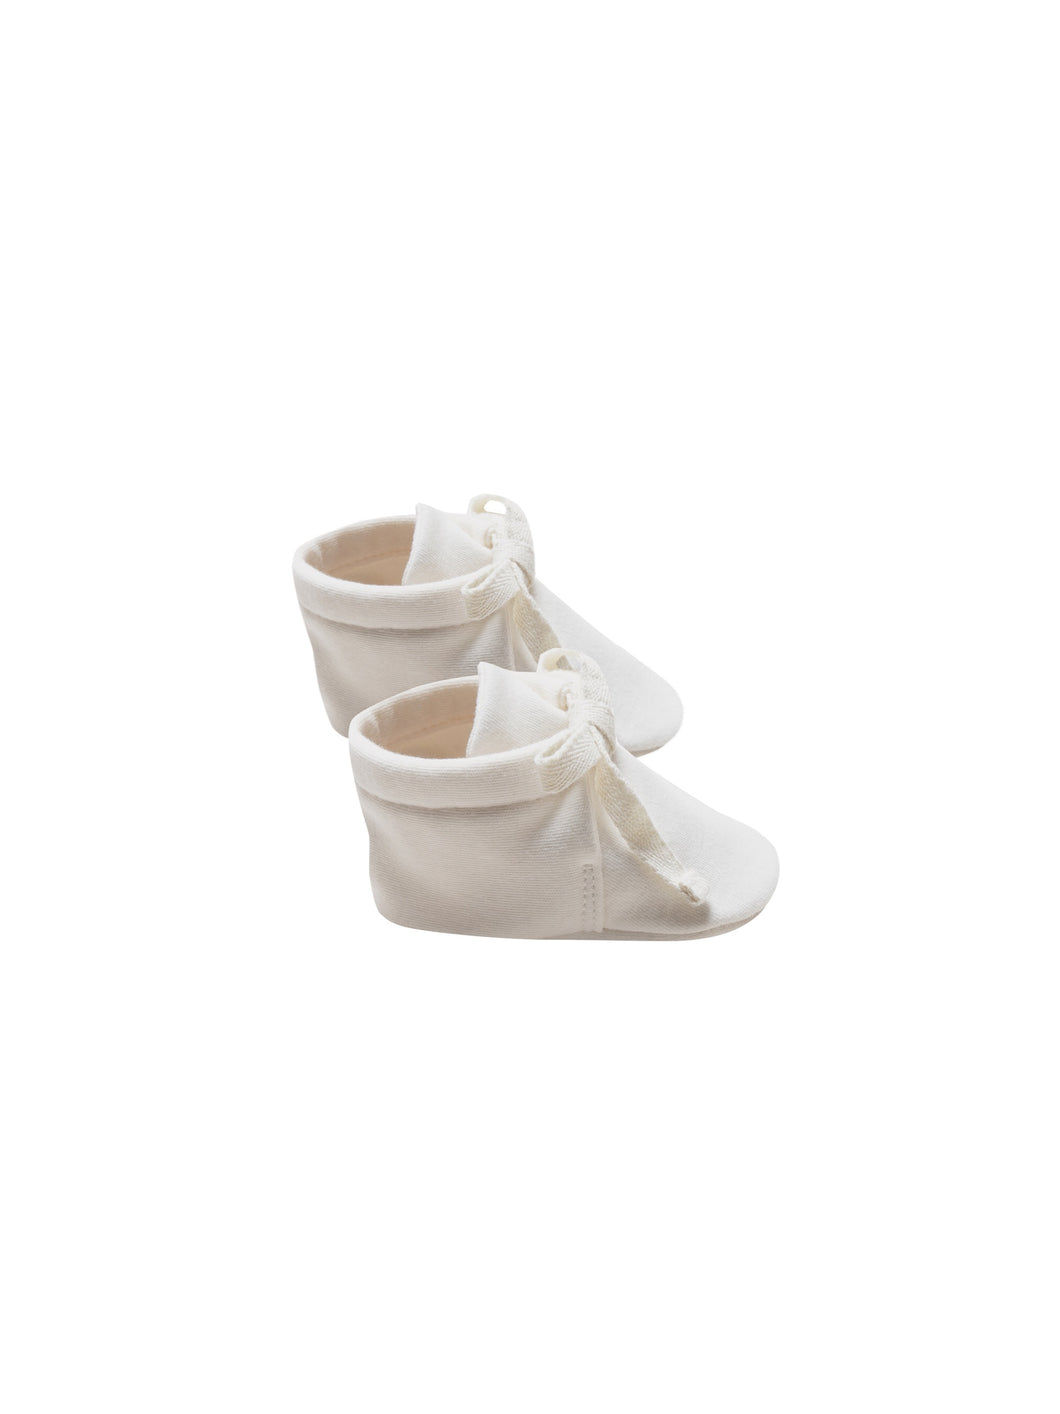 Quincy Mae baby booties - ivory